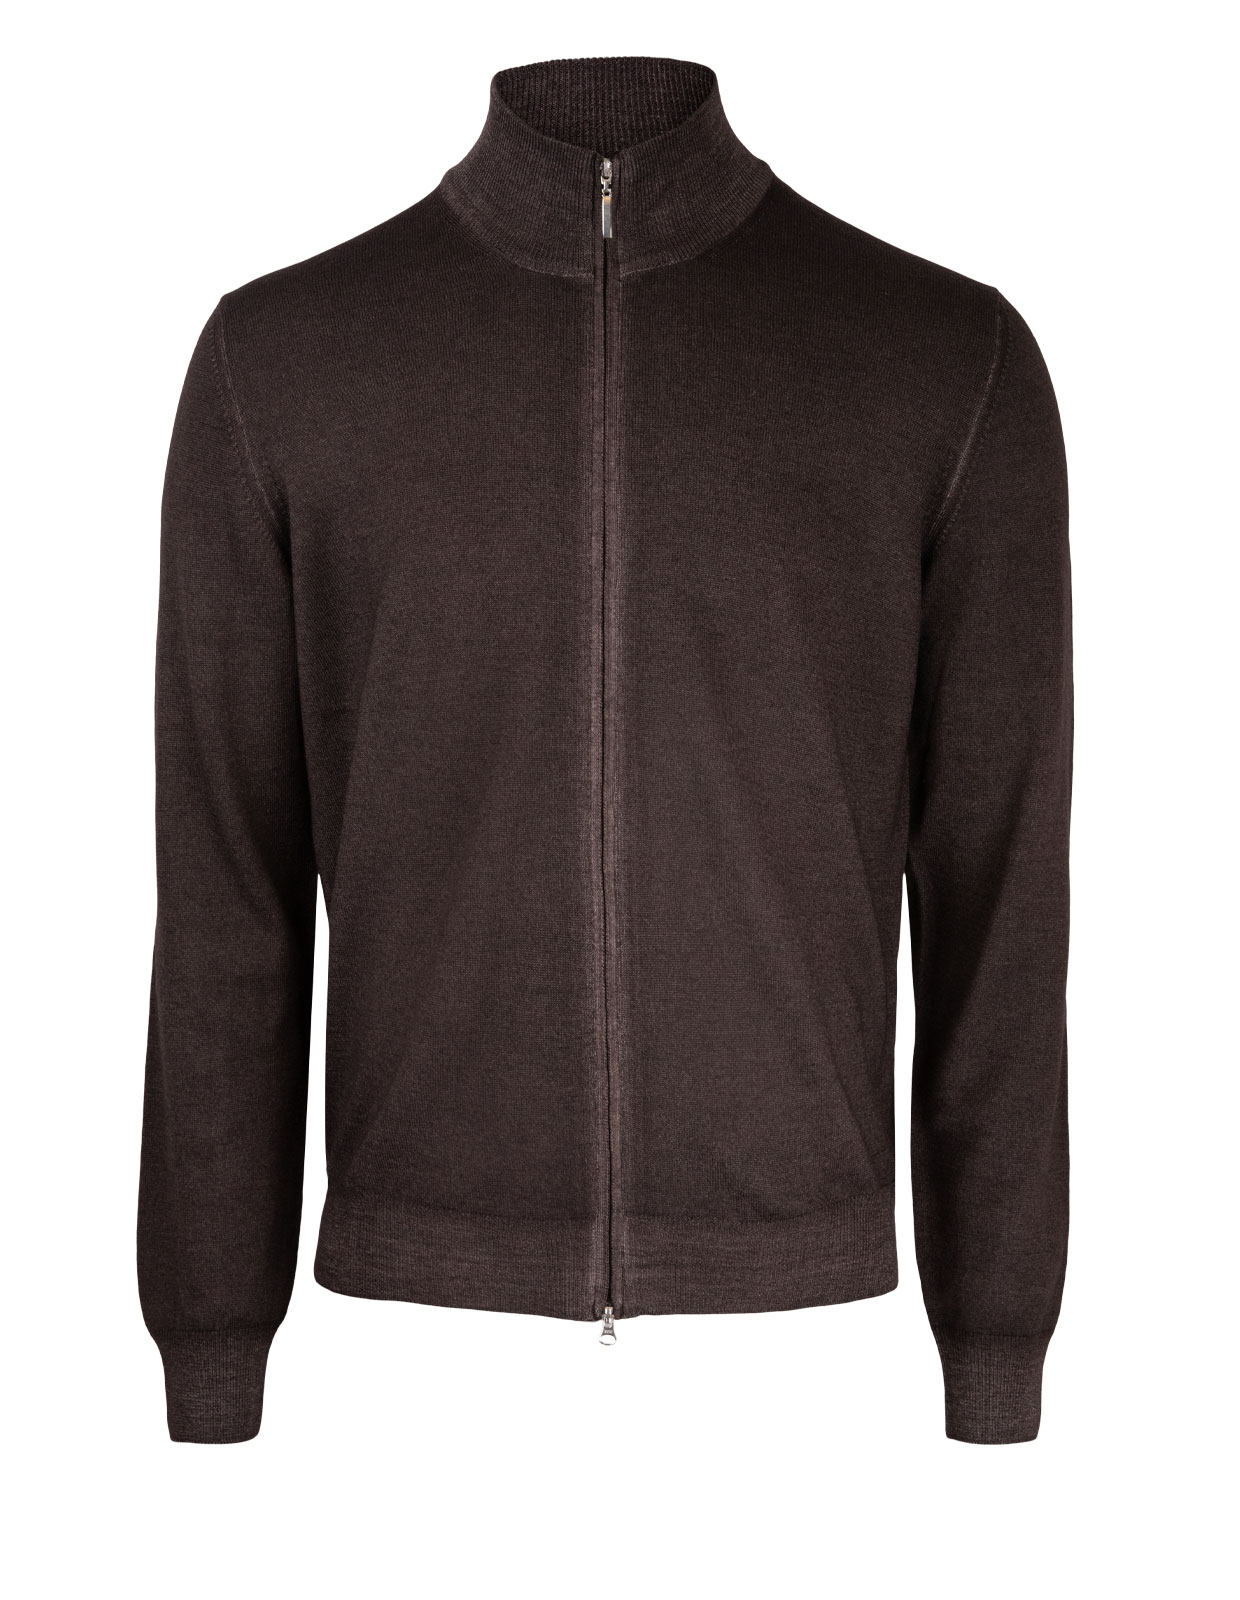 Full Zip Vintage Merino Brown